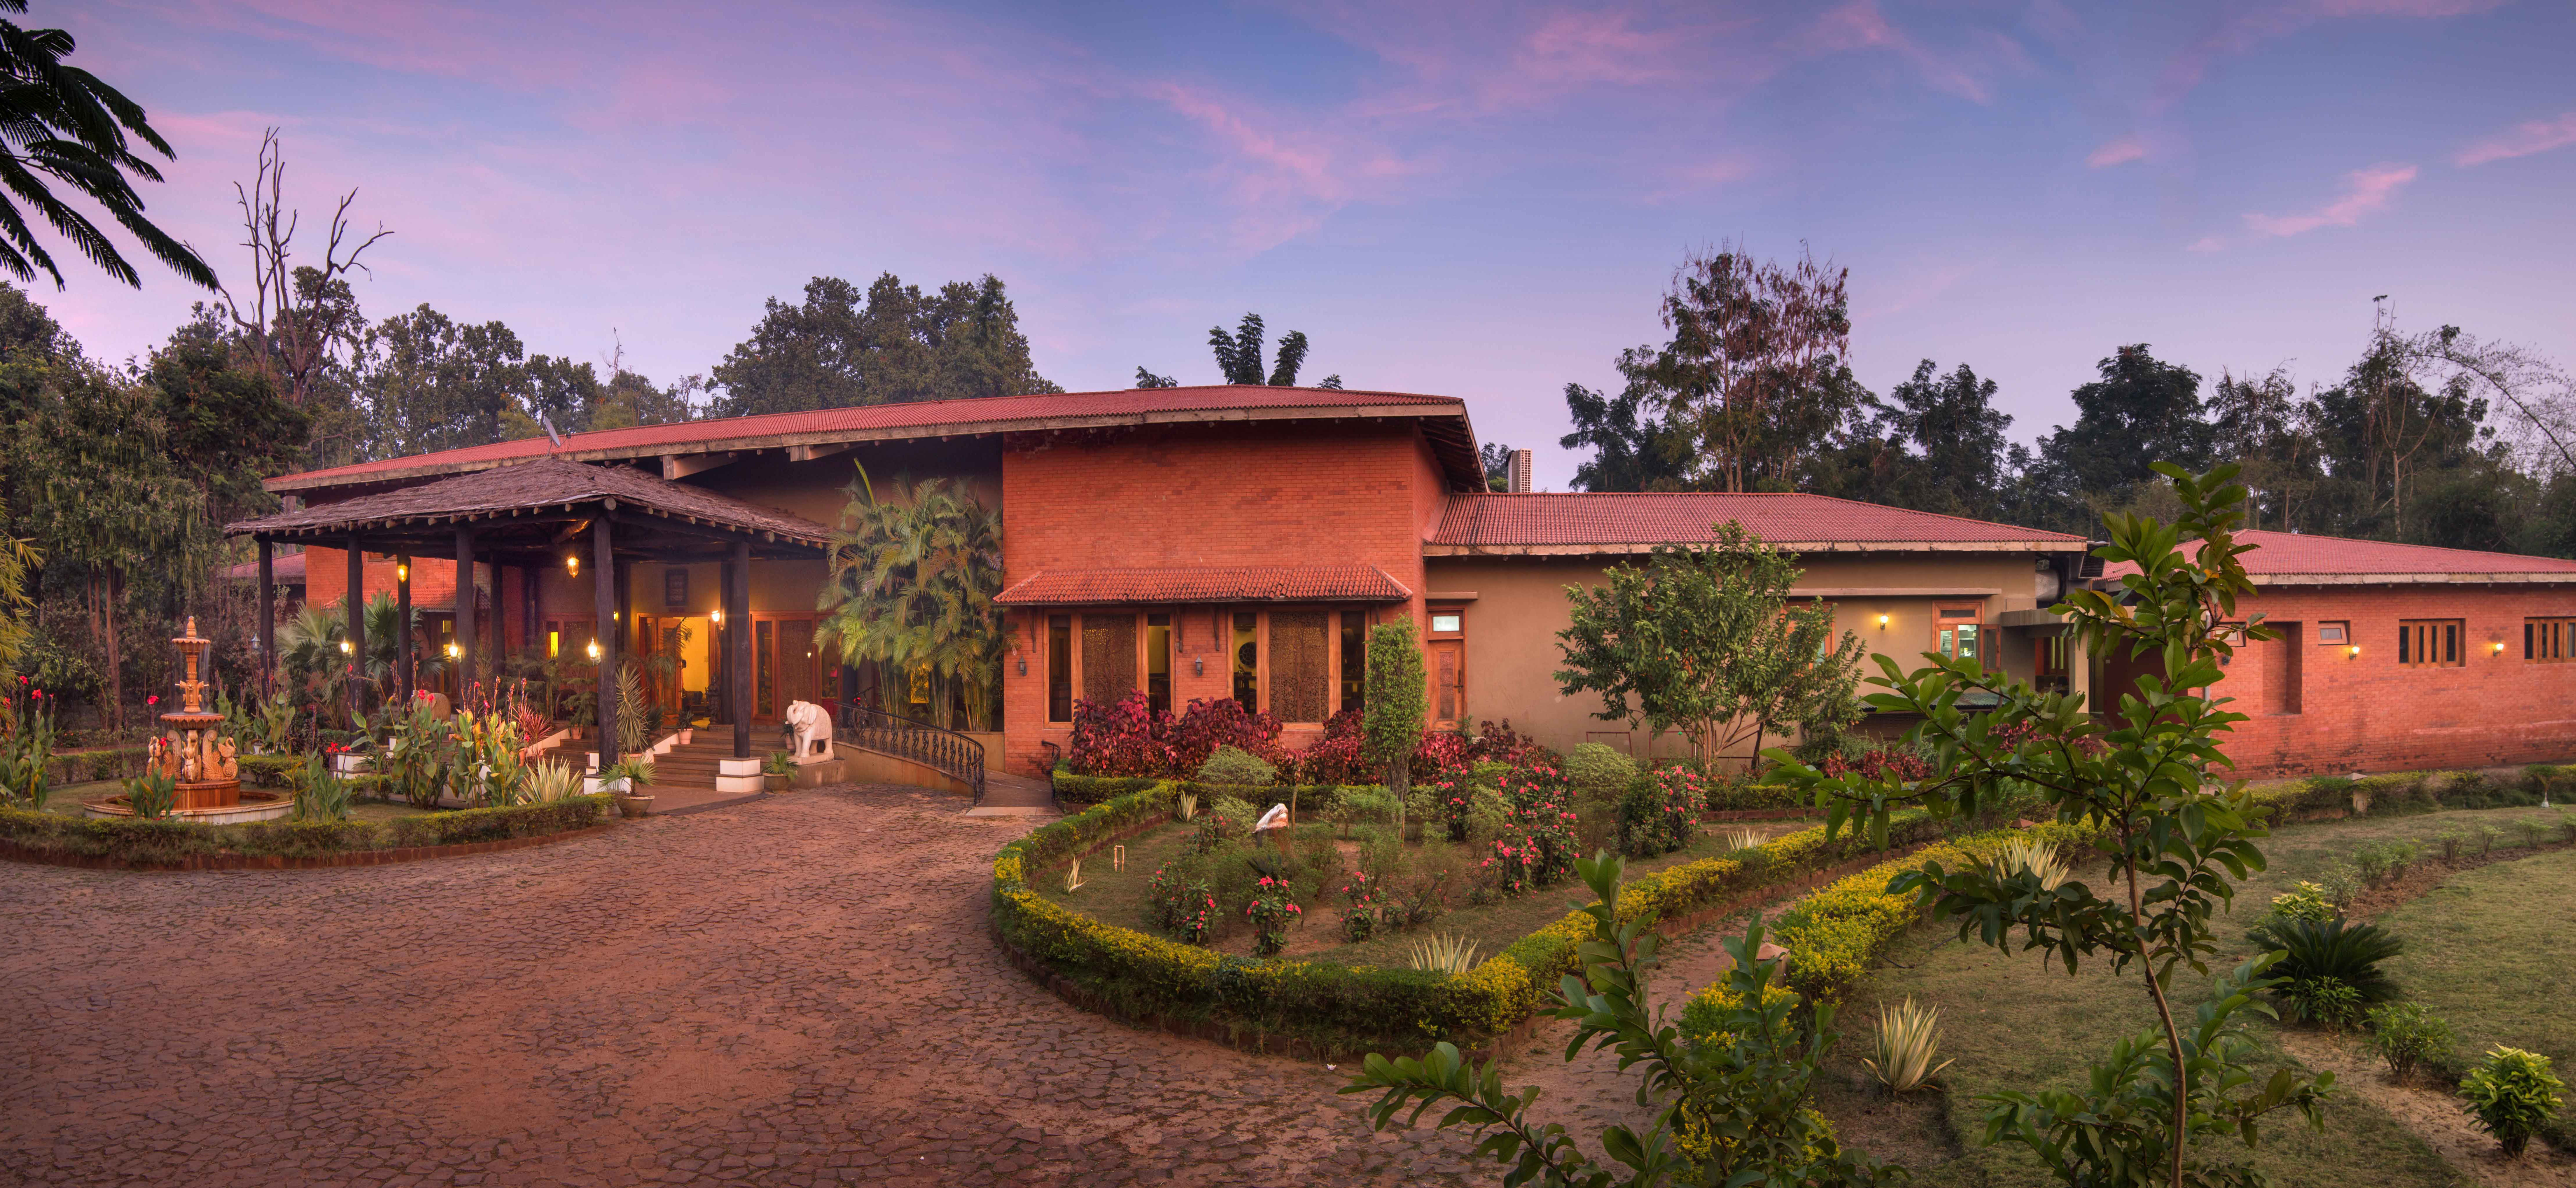 Syna Tiger Resort in Bandhavgarh